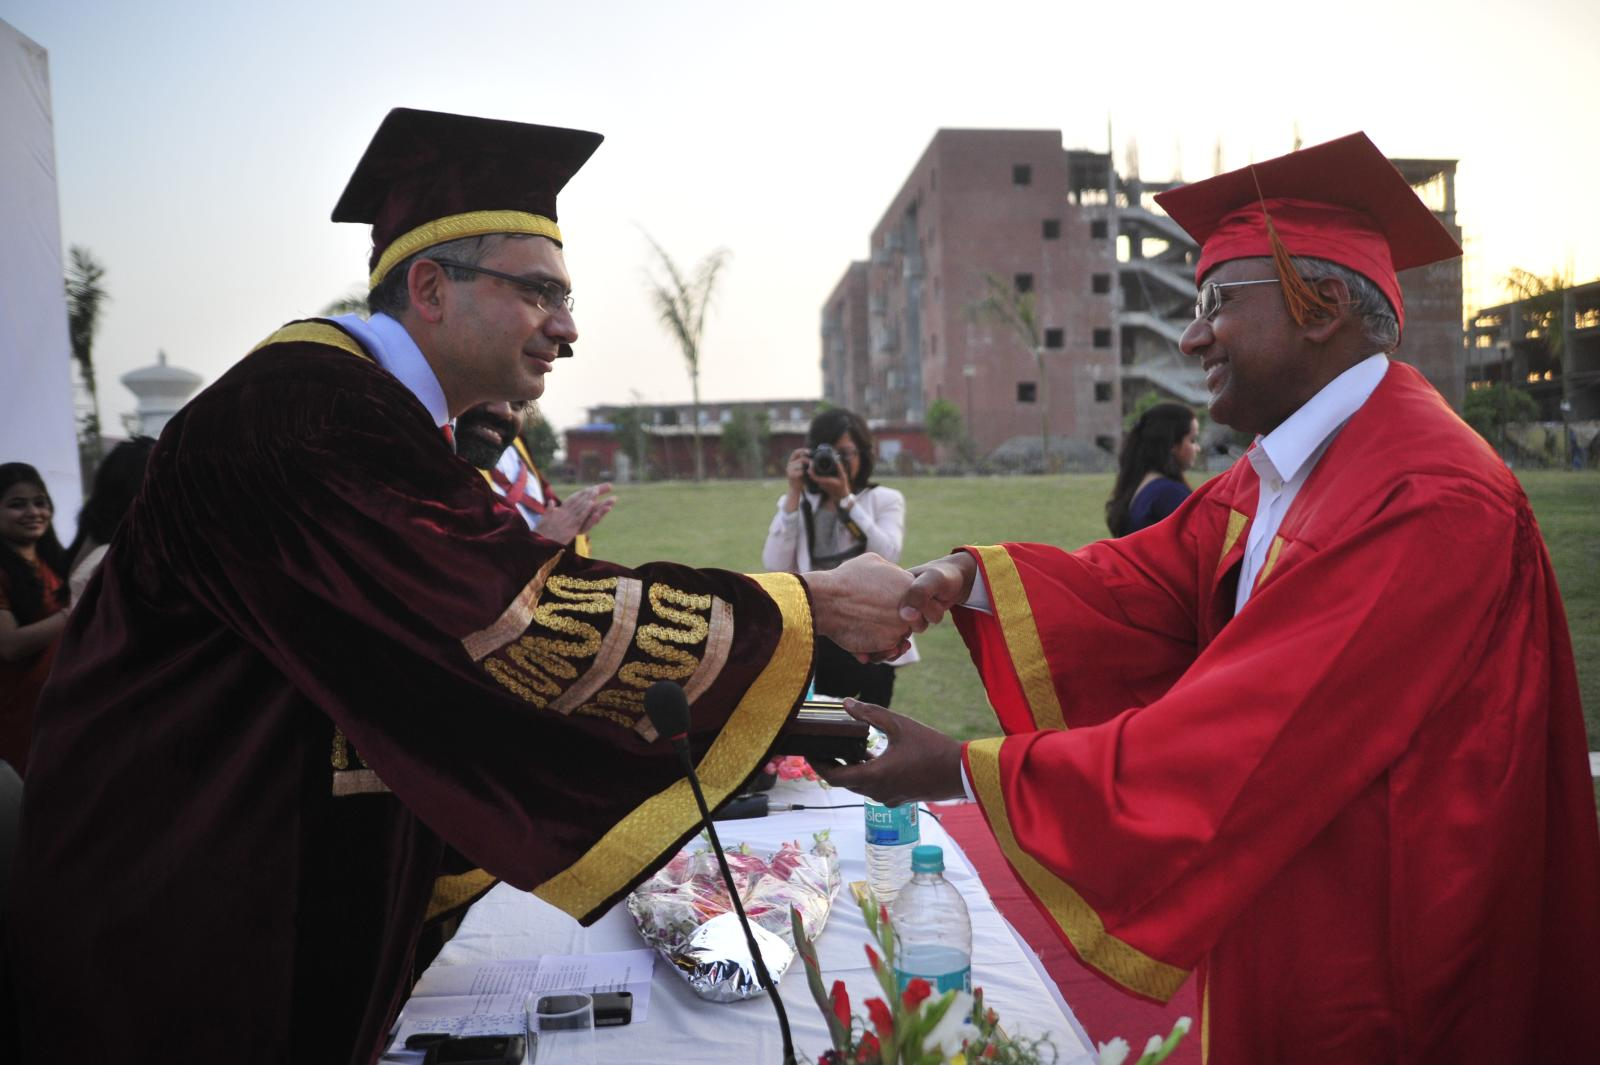 Deep Kalra, Founder MakeMyTrip.com, Guest of honour for 3rd Convocation at IWSB is being felicitated by the Dean - Acads, Prof Veeresh Sharma